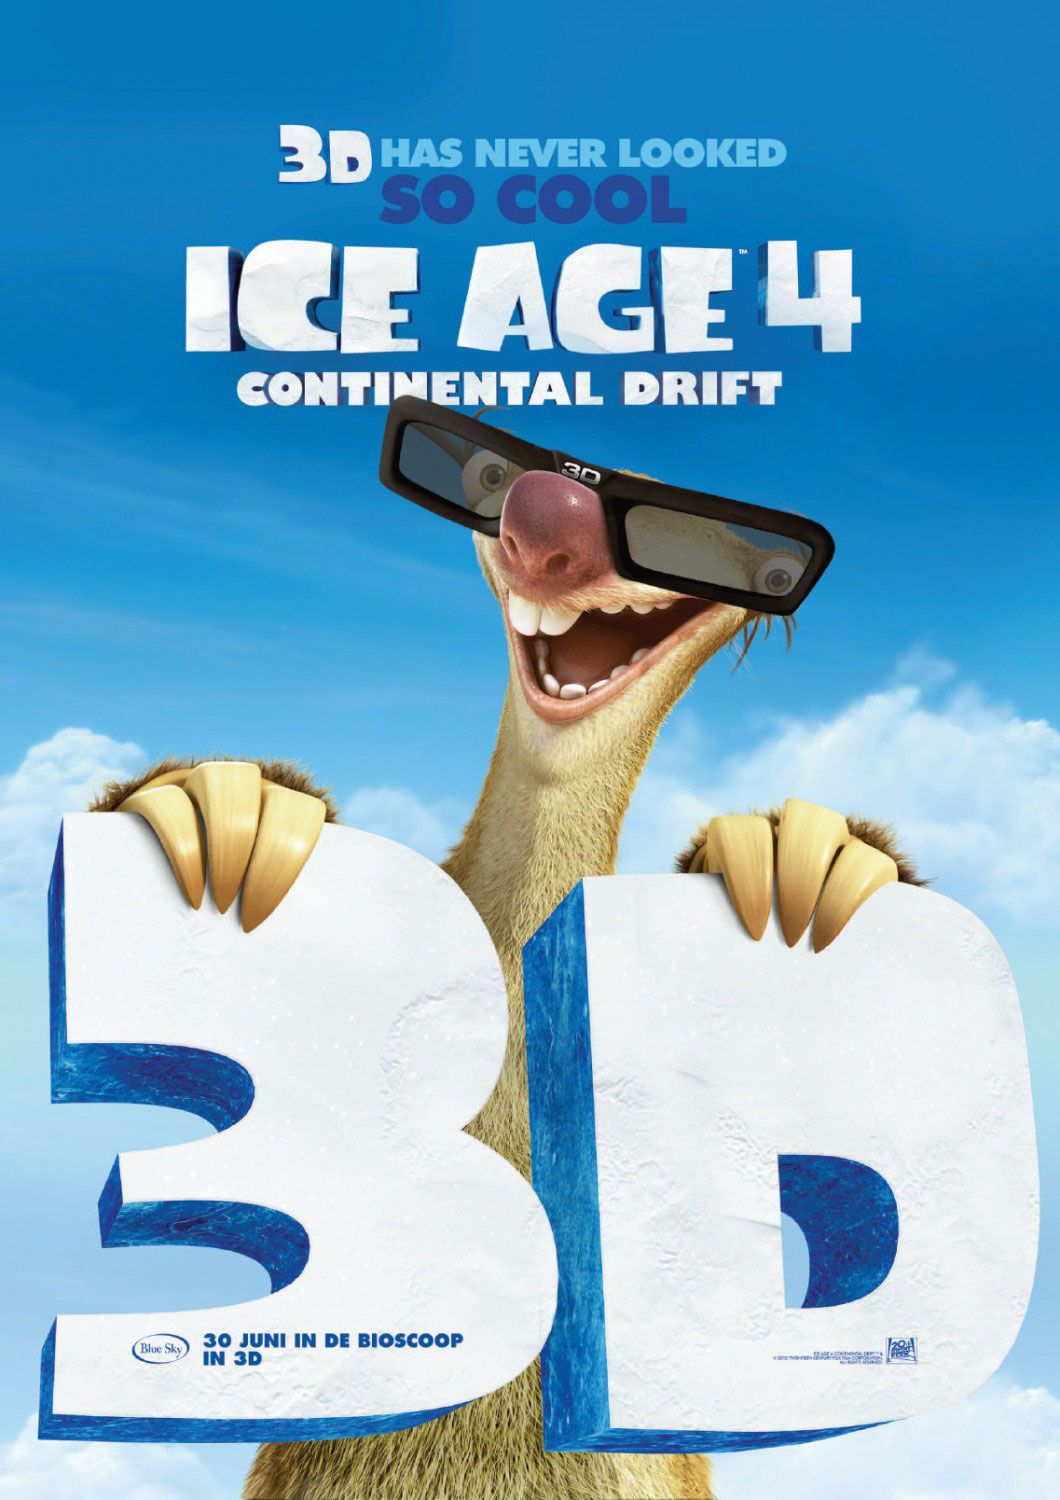 Ice Age: Continental Drift , starring Ray Romano, Denis Leary, John Leguizamo, Aziz Ansari. Manny, Diego, and Sid embark upon another adventure after their continent is set adrift. Using an iceberg as a ship, they encounter sea creatures and battle pirates as they explore a new world. #Animation #Adventure #Comedy #Family